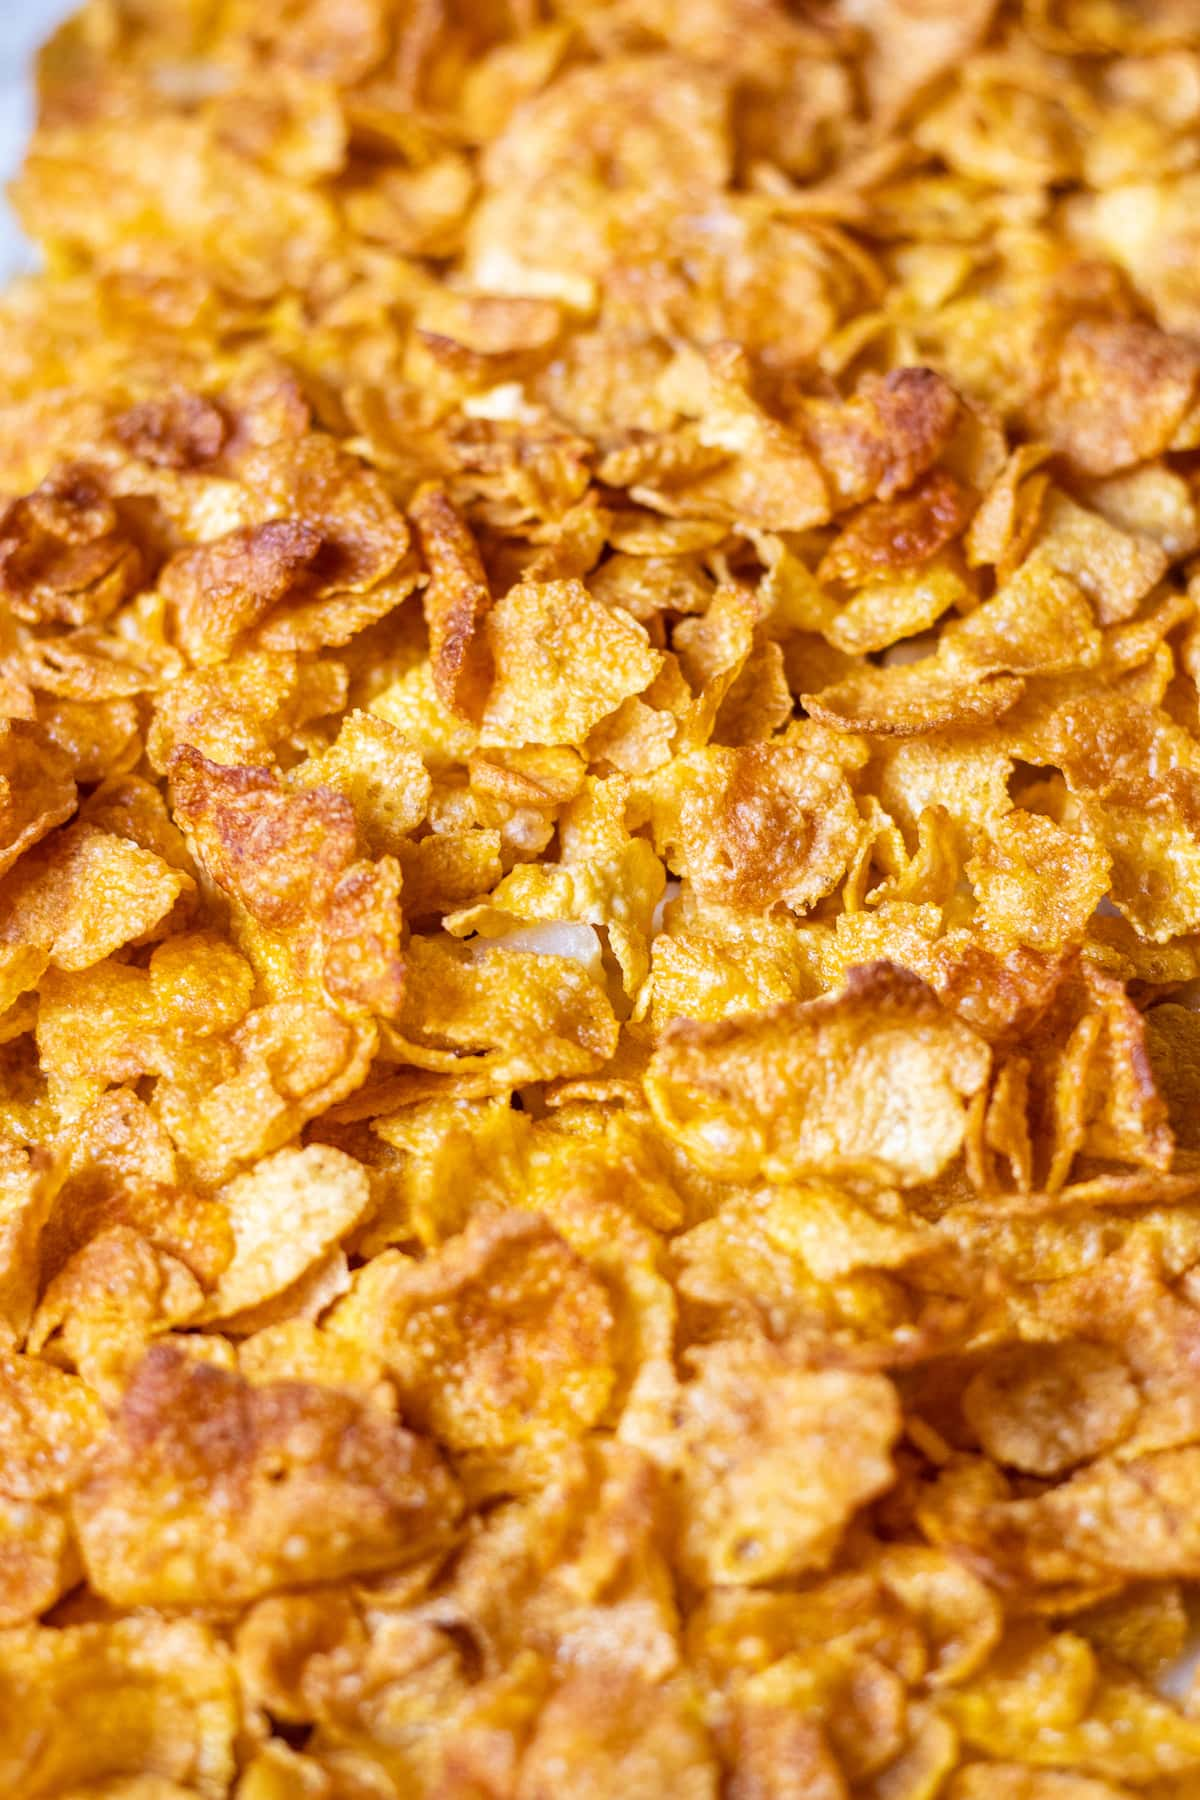 Close up of the toasted corn flakes on top.